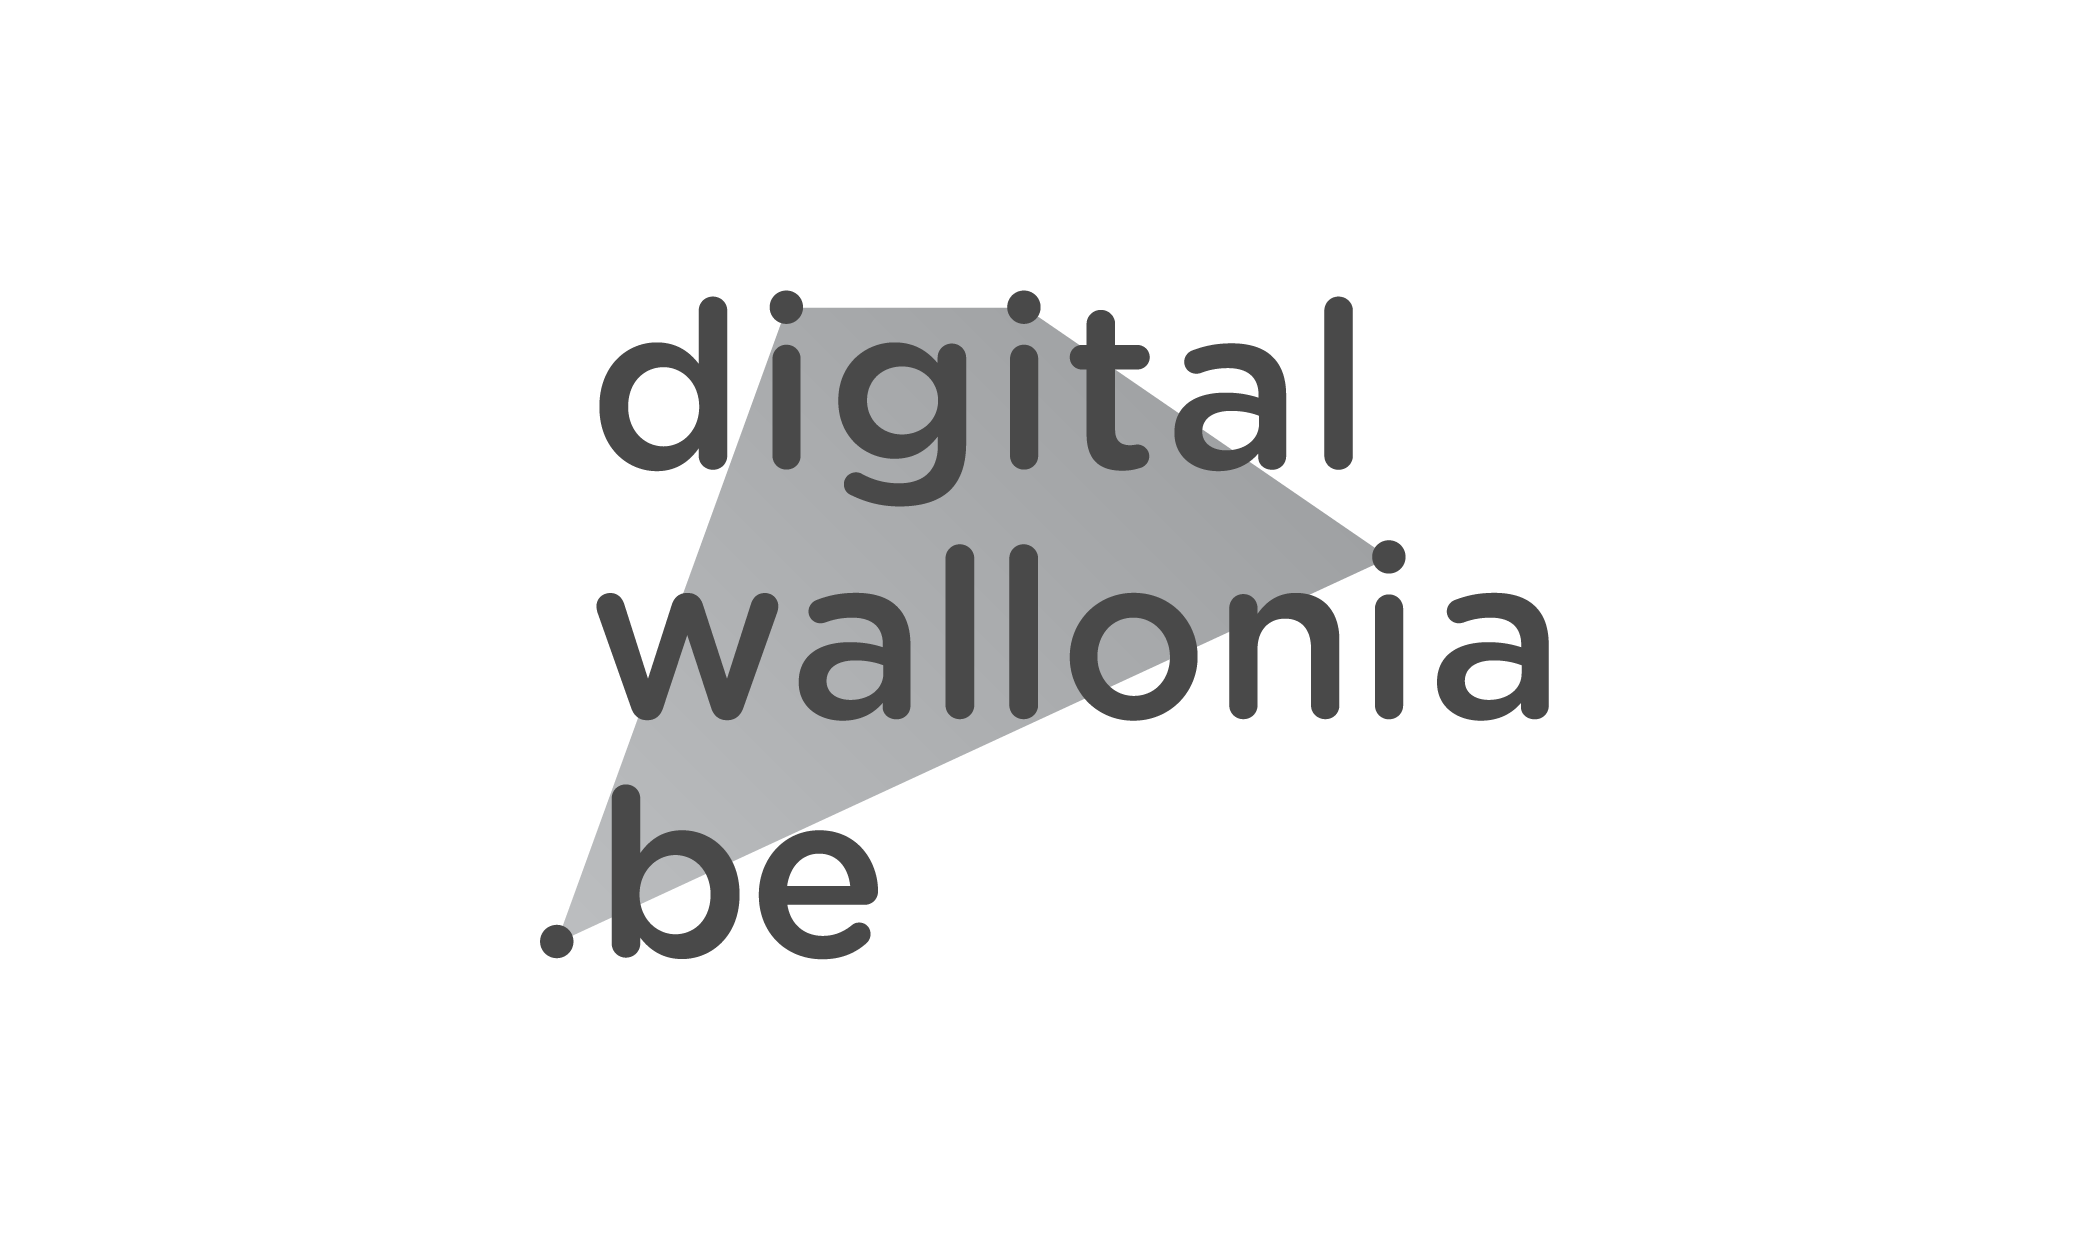 DIGITAL WALLONIA-01.png